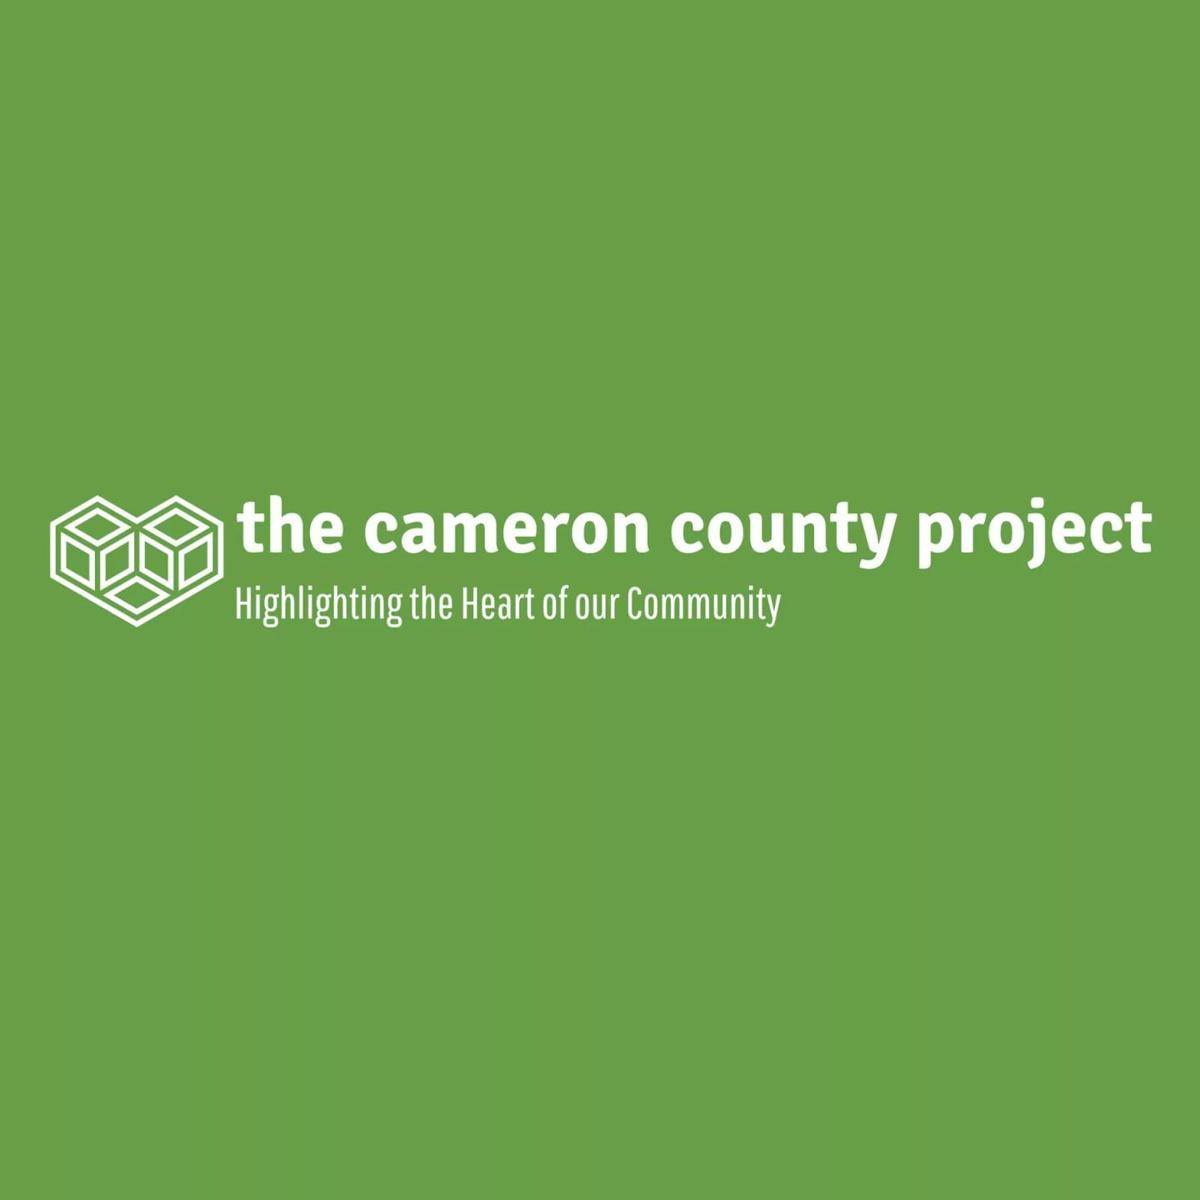 Cameron co. project